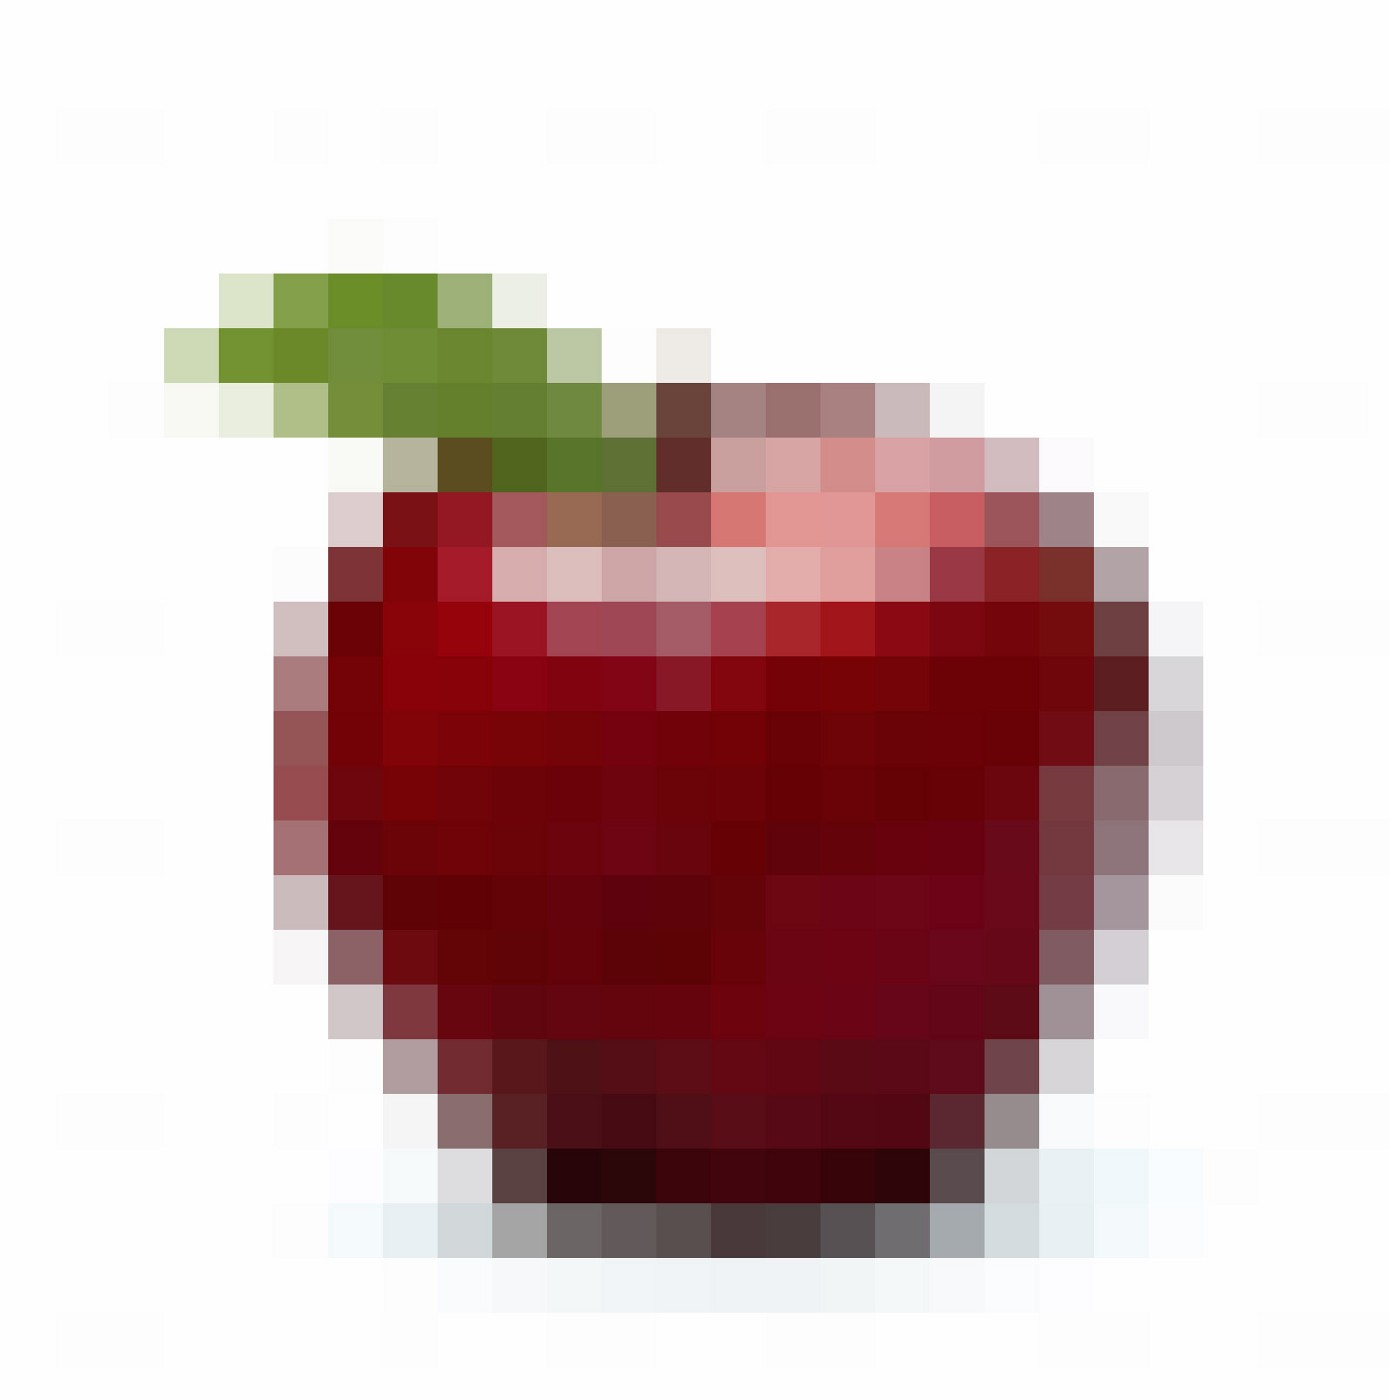 Pixelated apple